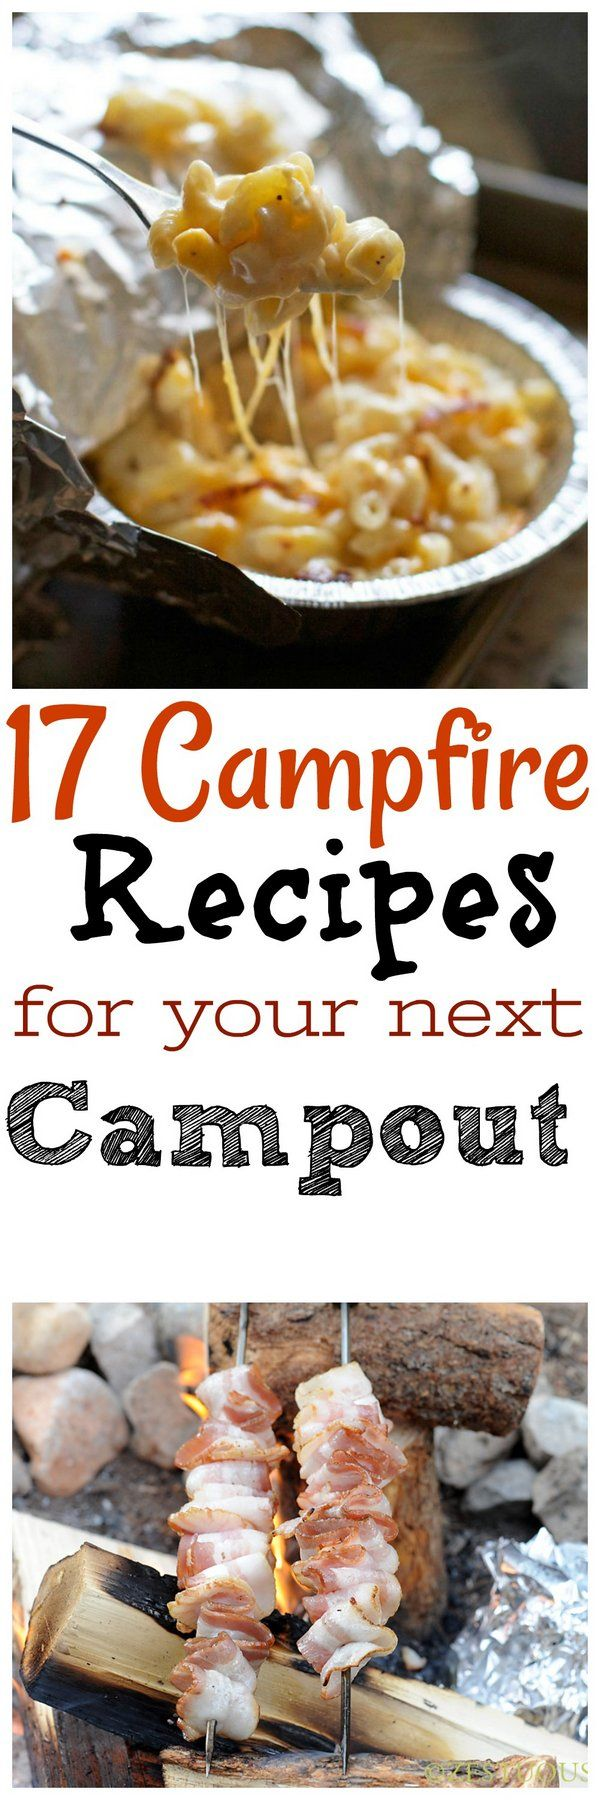 17 Campfire Recipes for Your Next Campout Campfire food